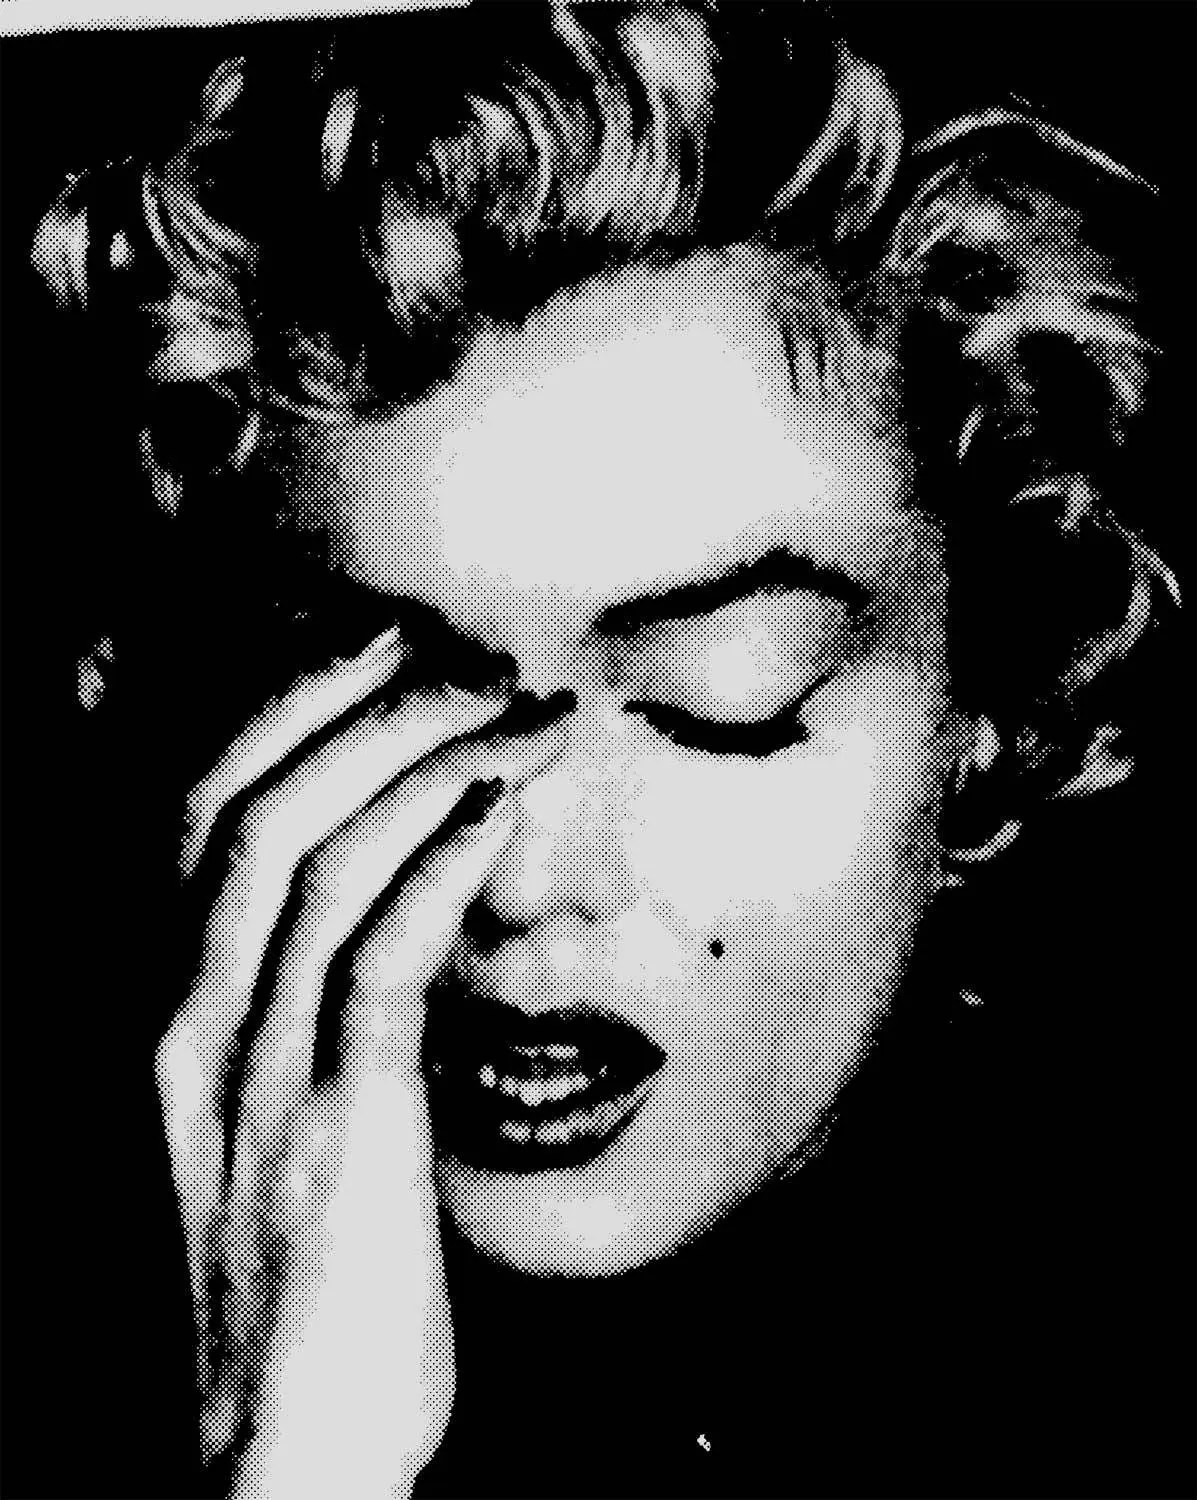 Art Marilyn Marilyn Monroe Photograph Print Poster Photo Pop Art Eyes Closed Shut Hand On Face Sad Cool Wall Decor